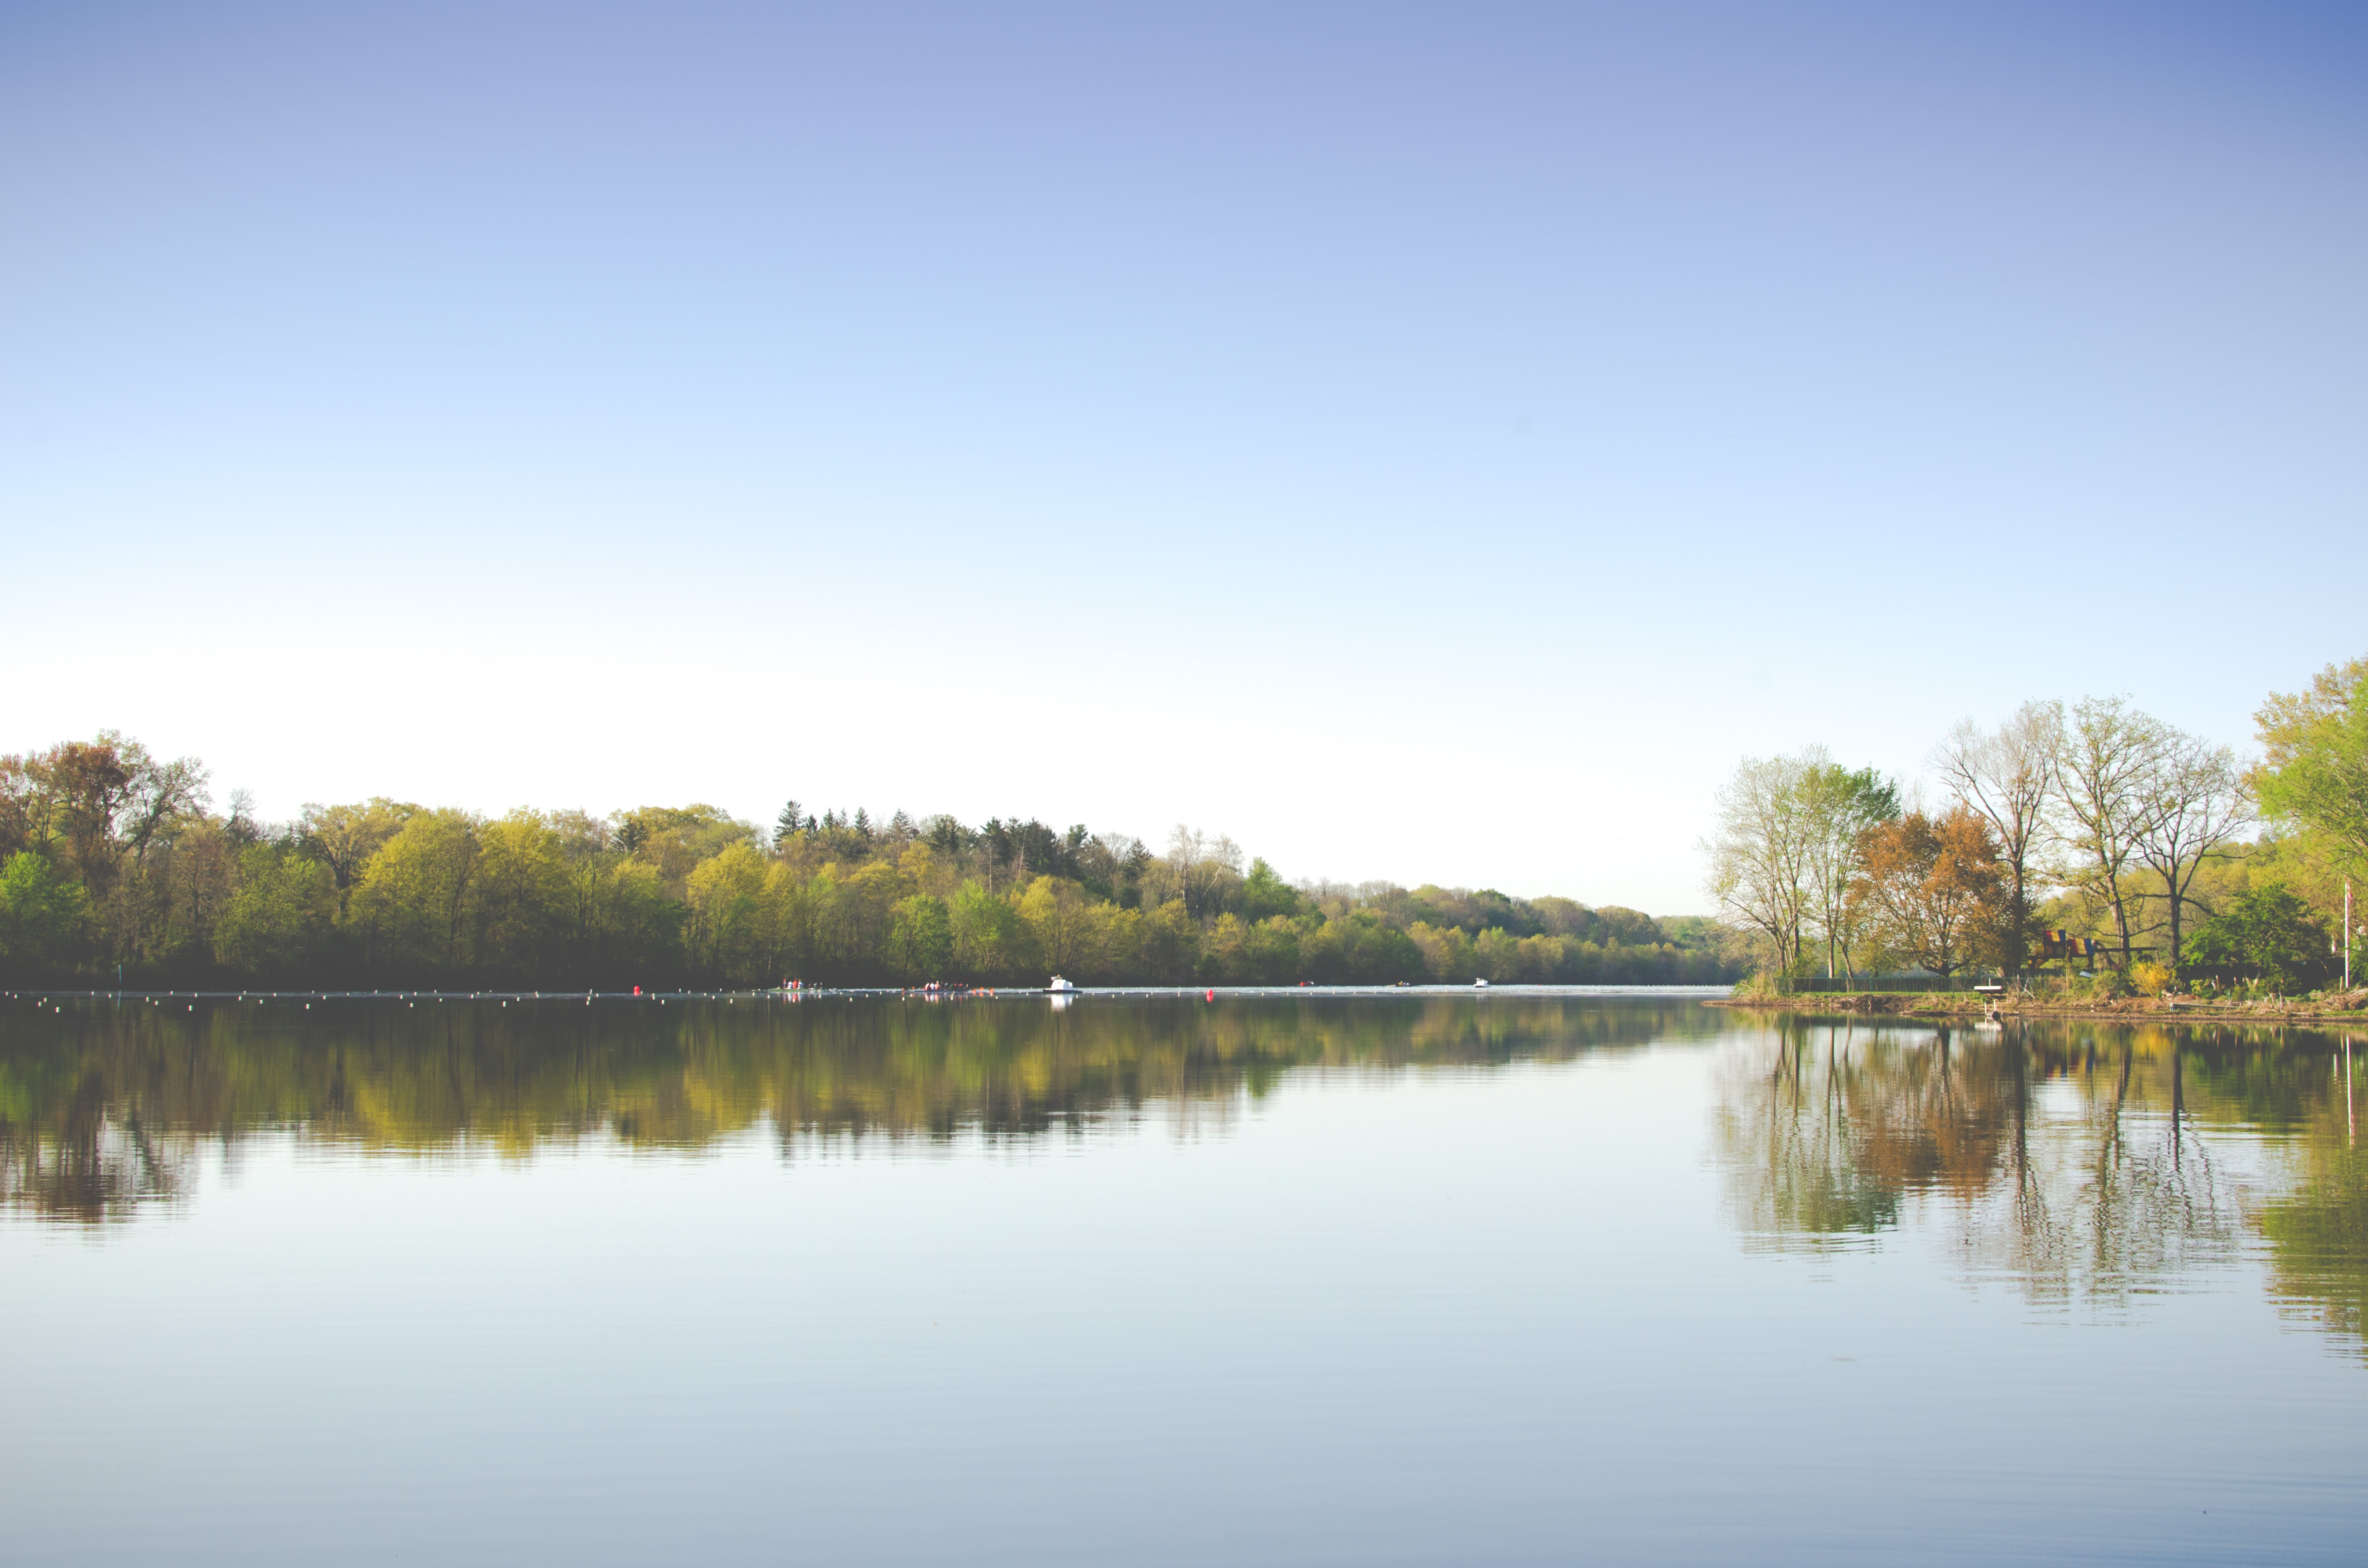 The calm surface of a lake on a sunny autumn day